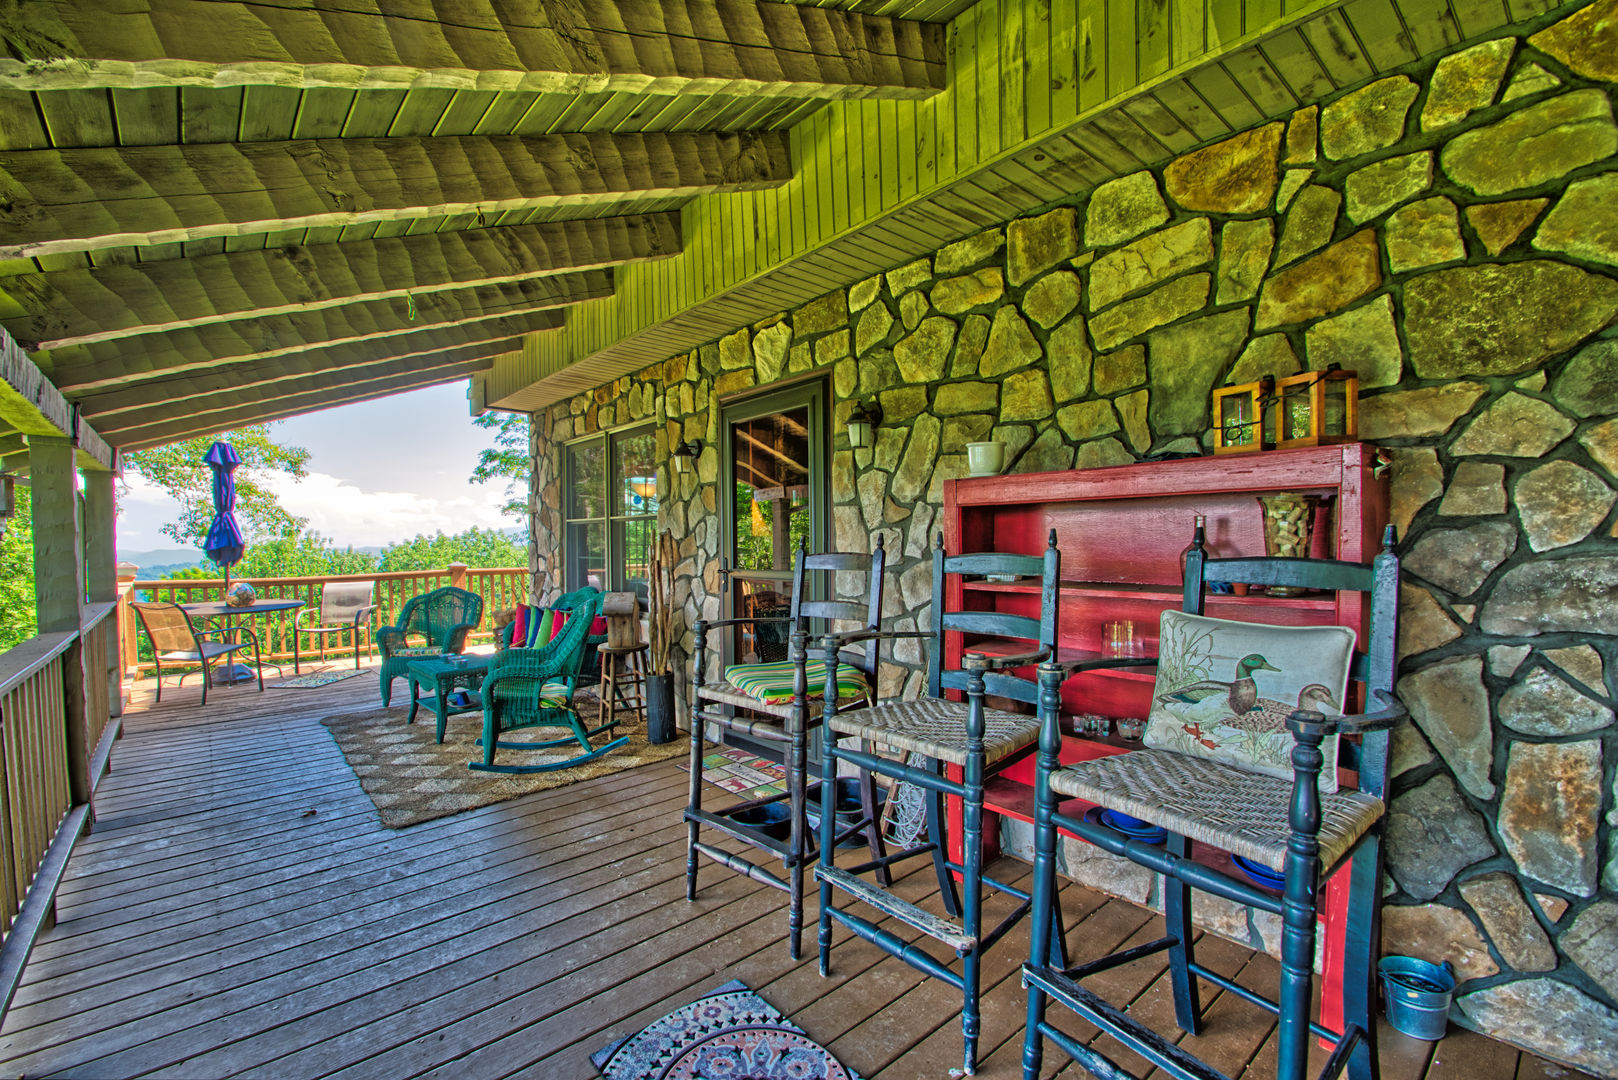 Back porch seating